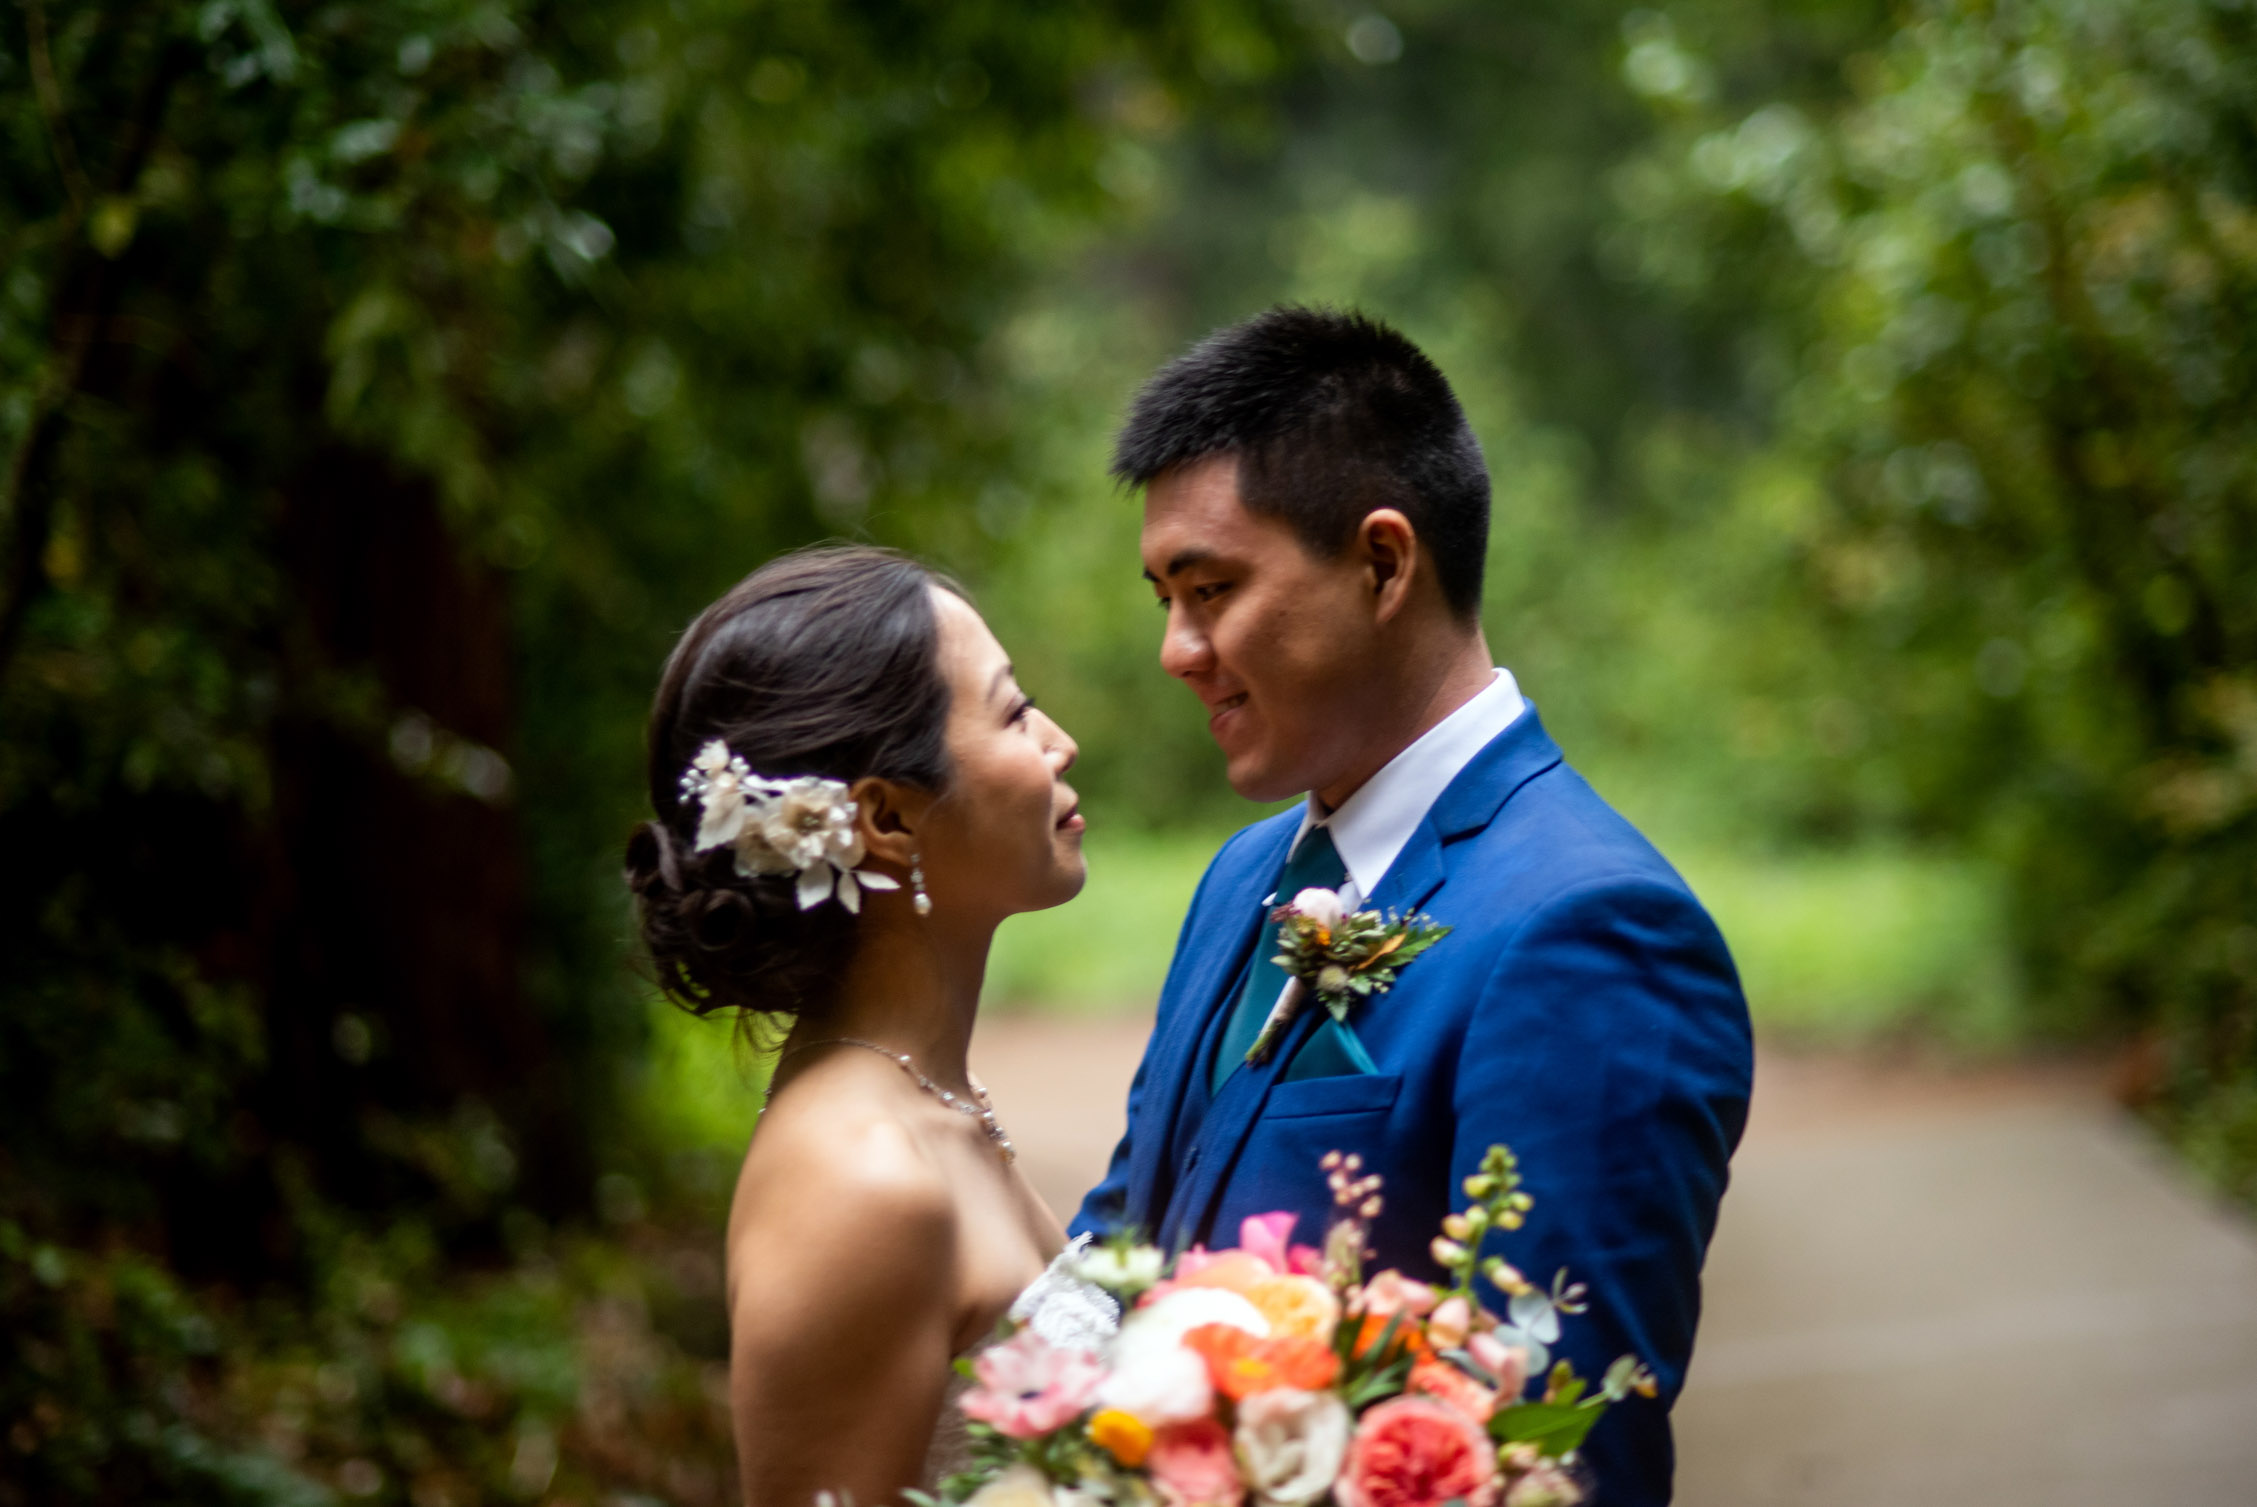 Bride and groom face to face in lush forest with flowers